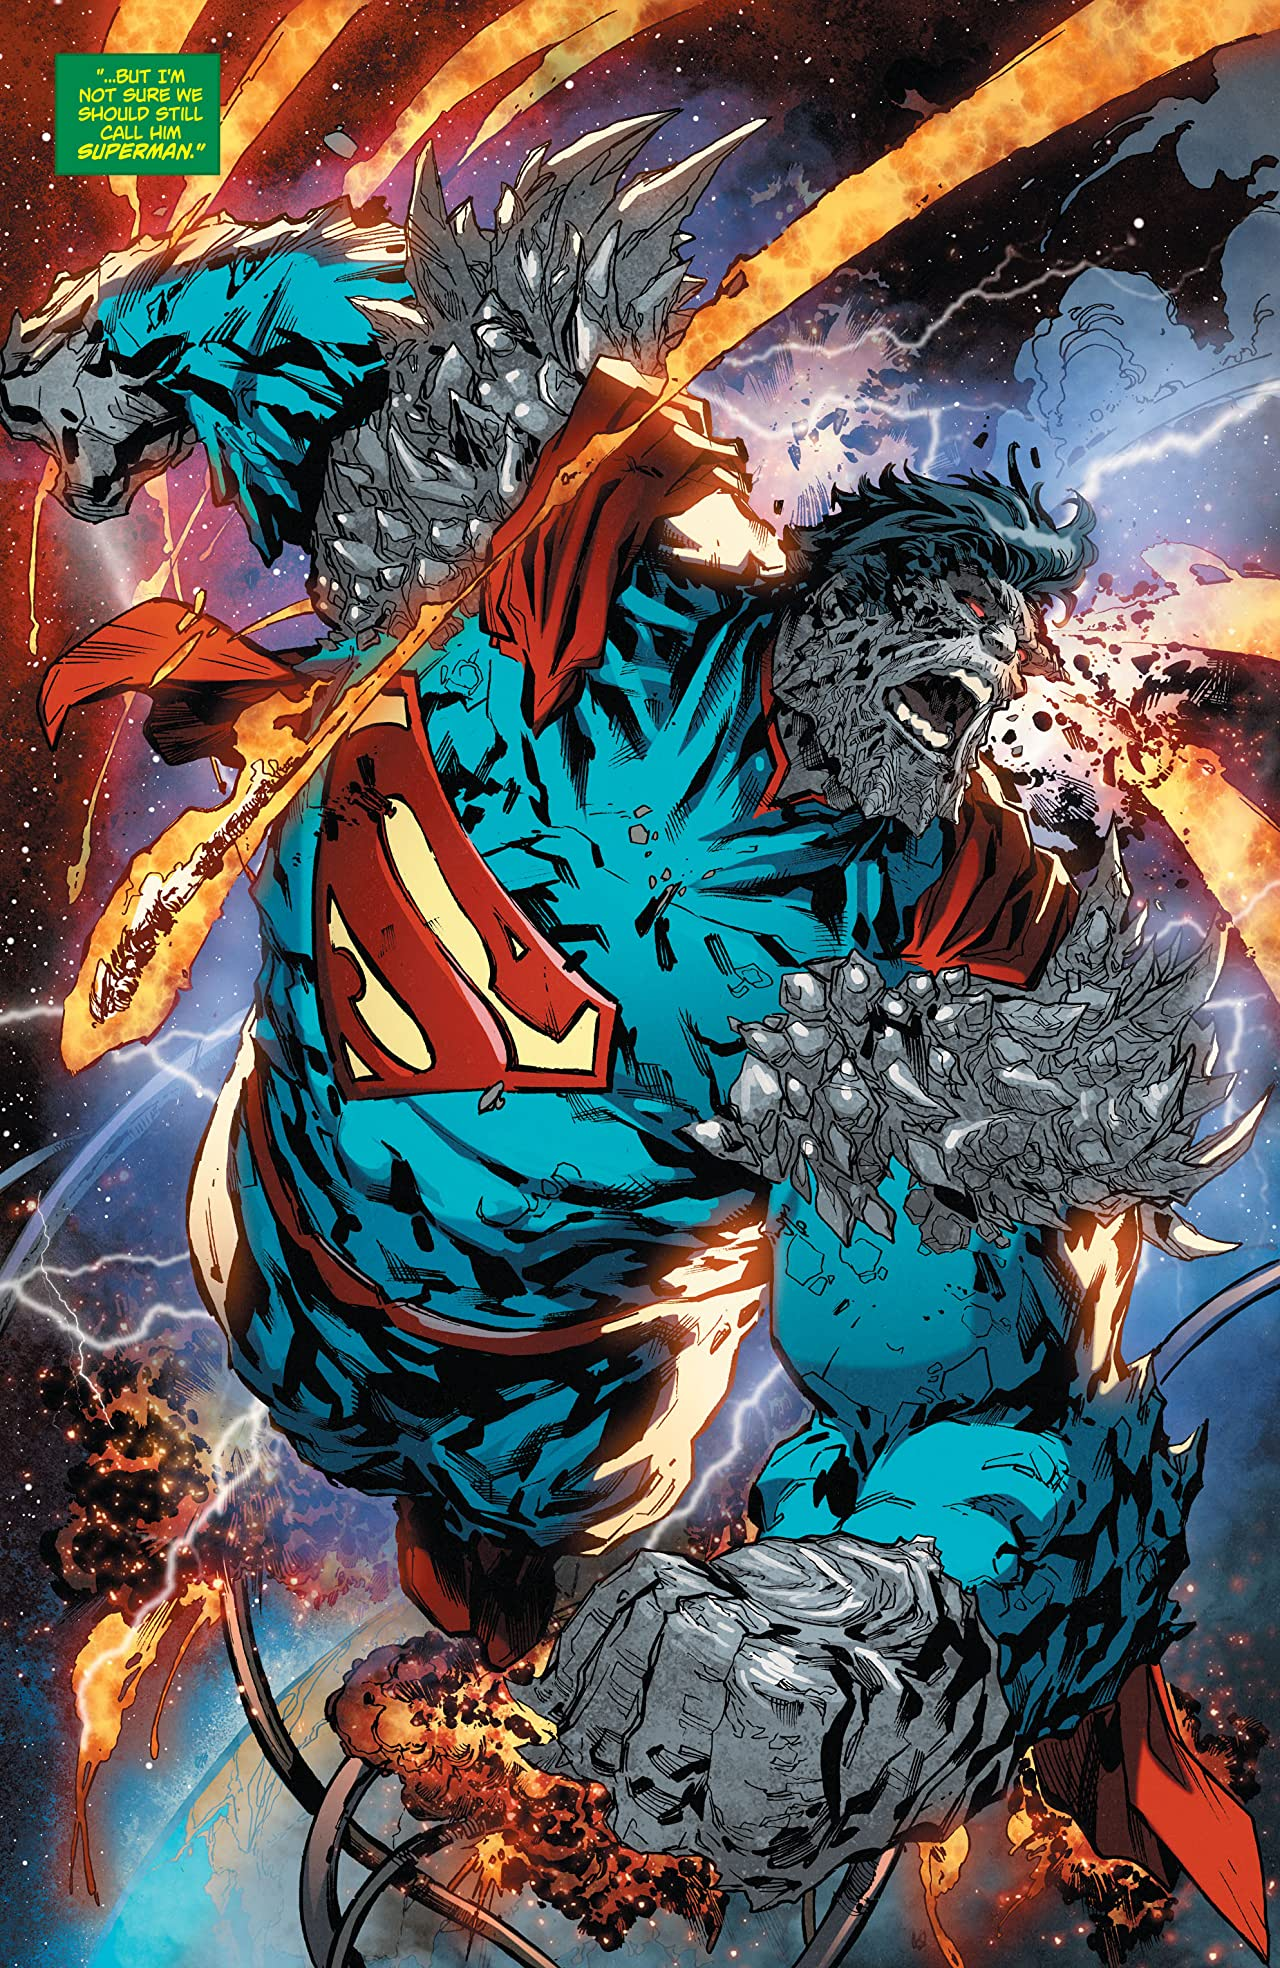 Superman: Doomed #2